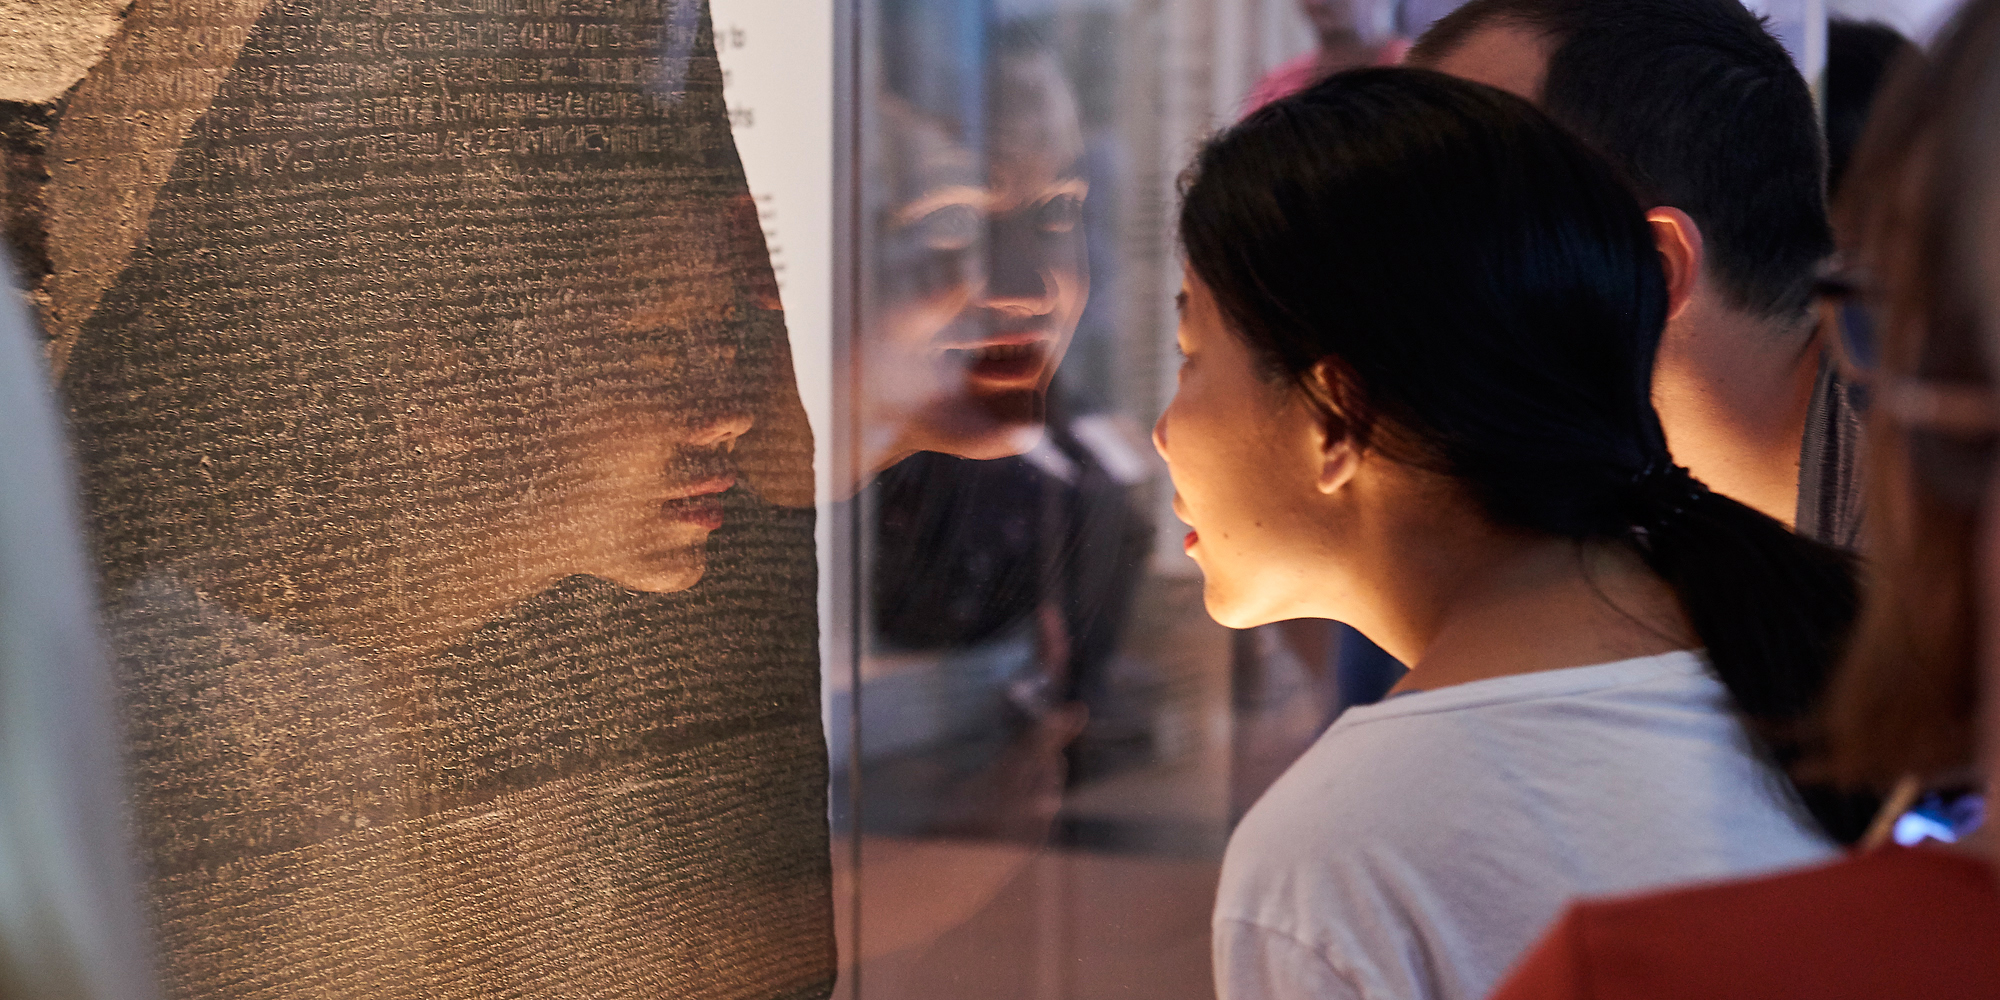 Image of two people looking at the Rosetta Stone in the British Museum